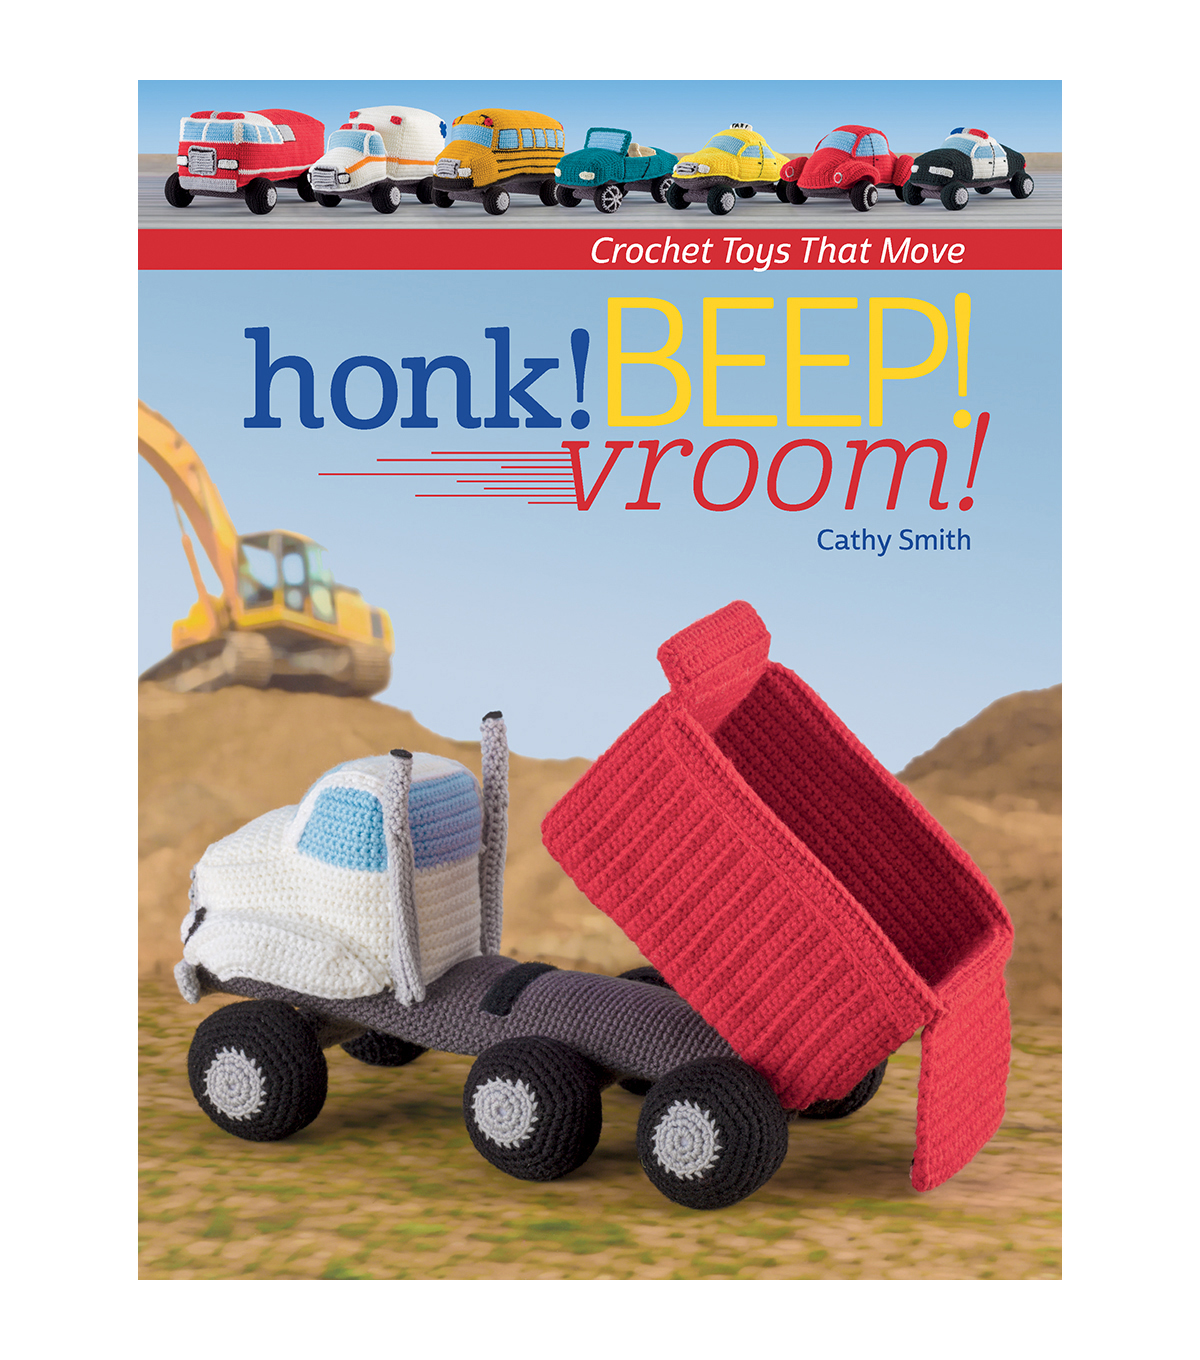 Cathy Smith Honk! Beep! Vroom! Crochet Book